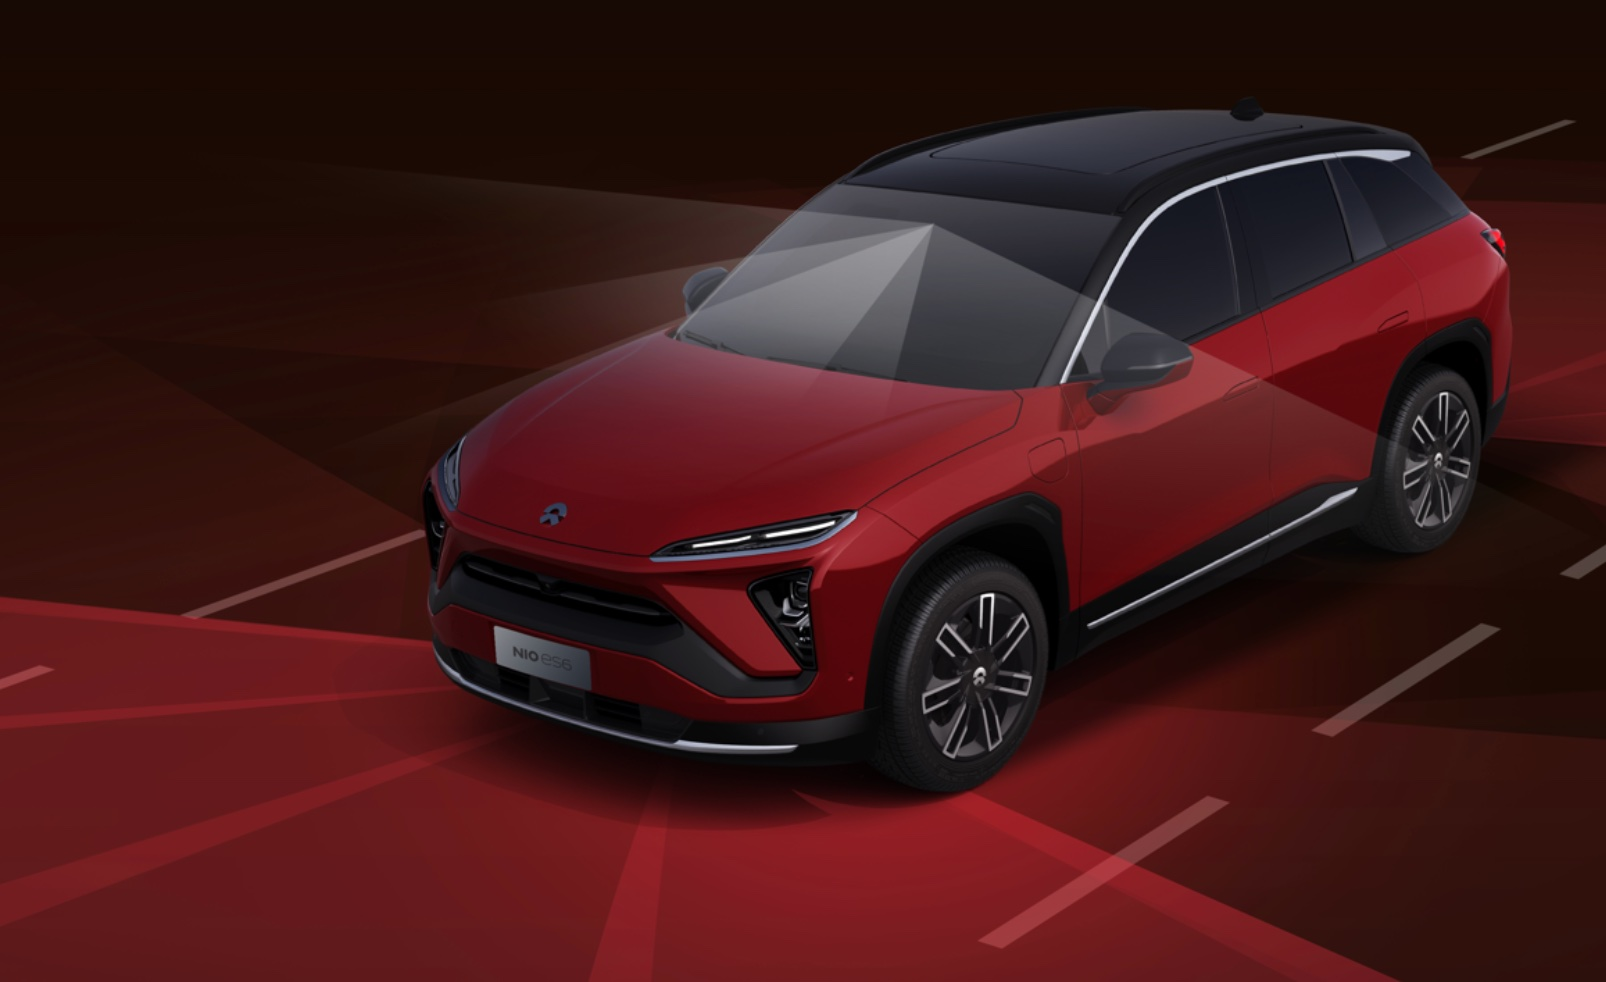 NIO establishes 'Marco Polo Project' to accelerate entry into overseas markets-cnTechPost